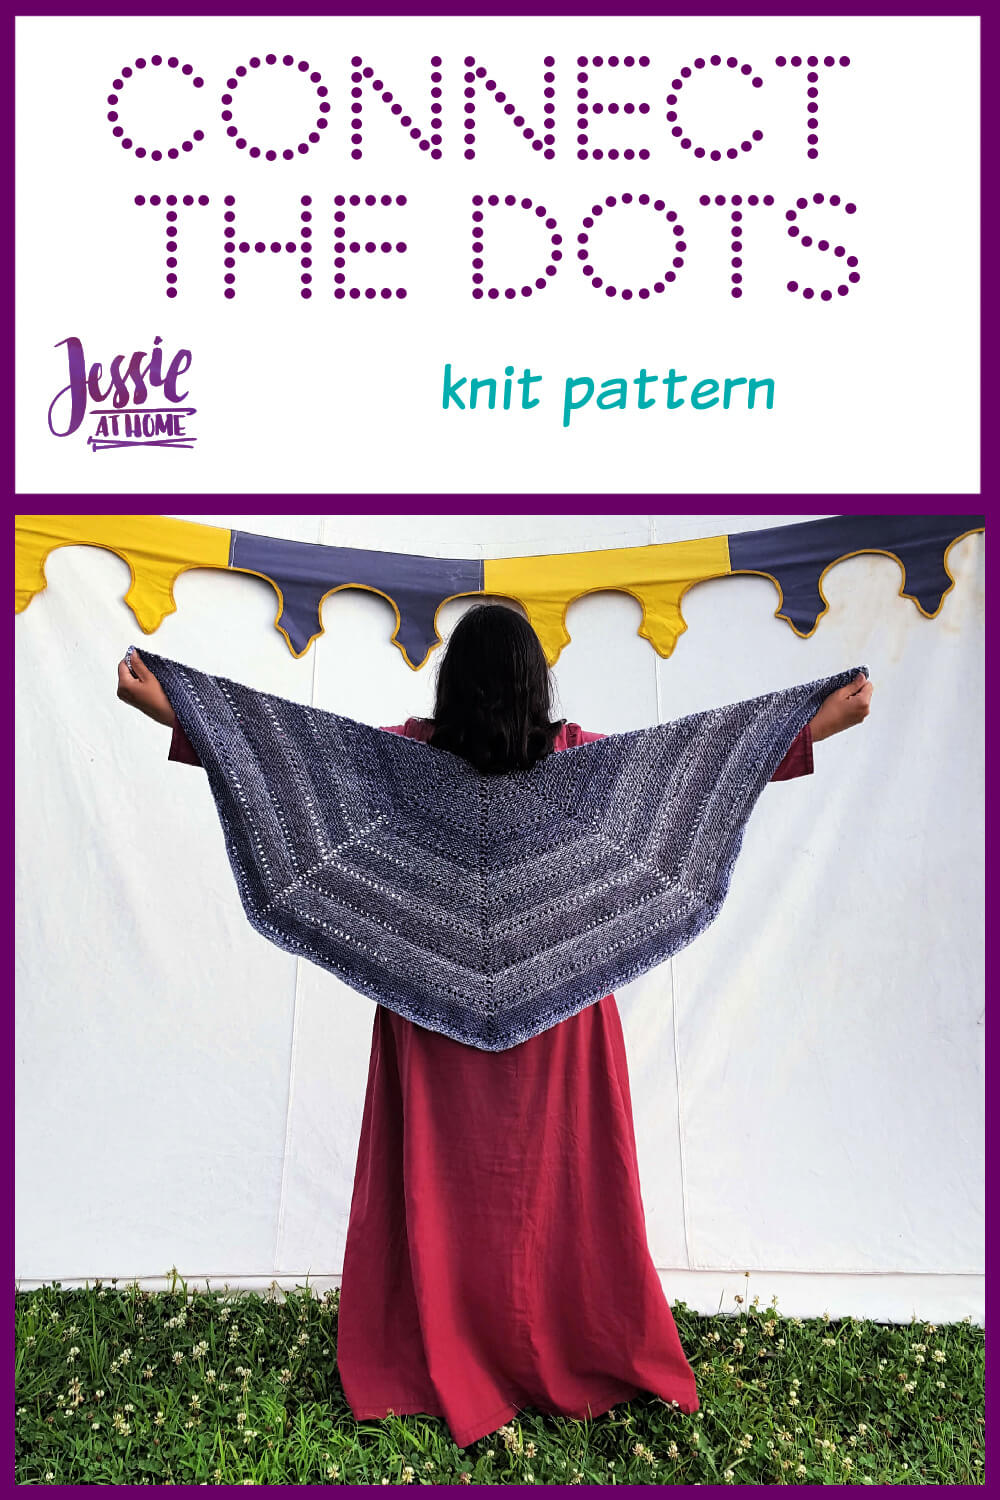 Eyelet Row Knitting Pattern - Connect the Dots - Great Beginner Project!